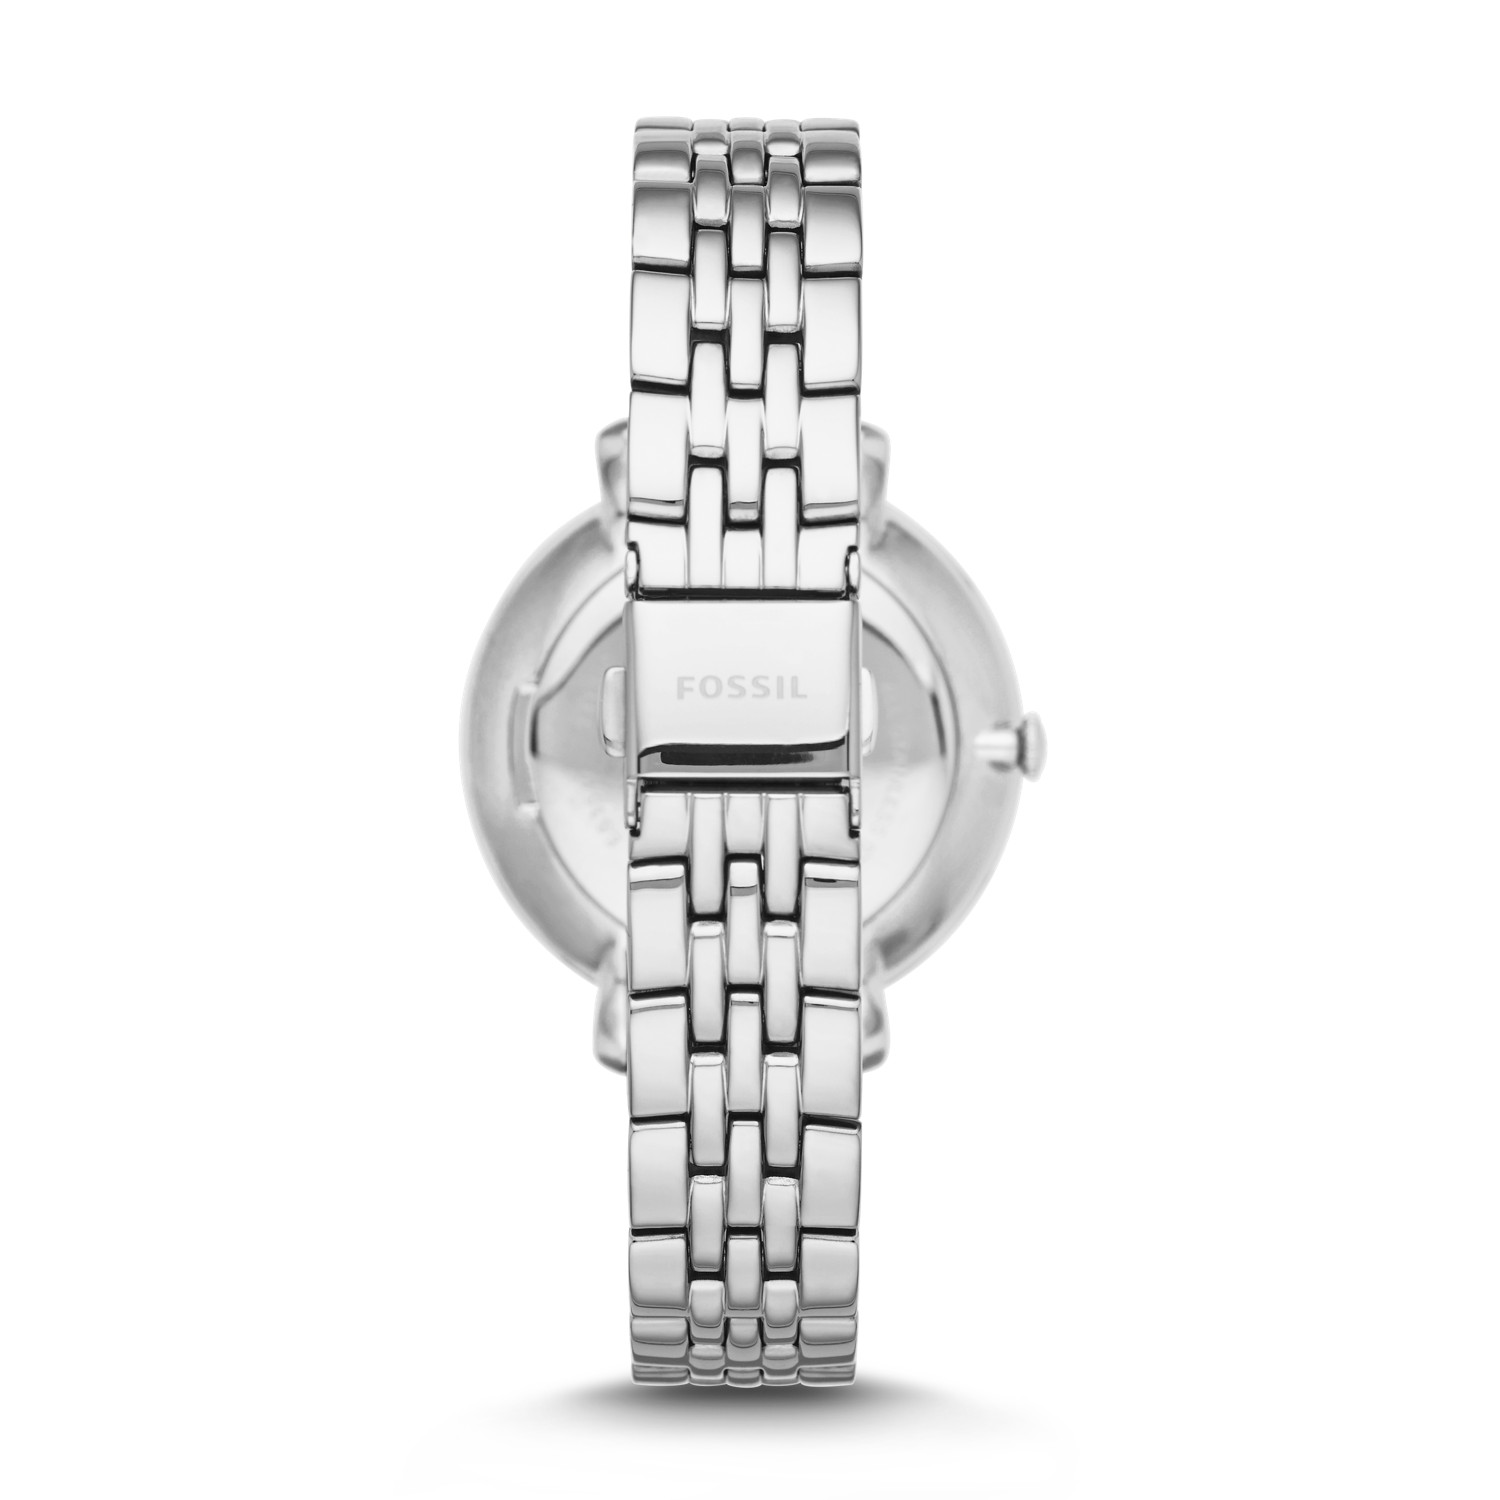 Jacqueline Stainless Steel Watch Fossil